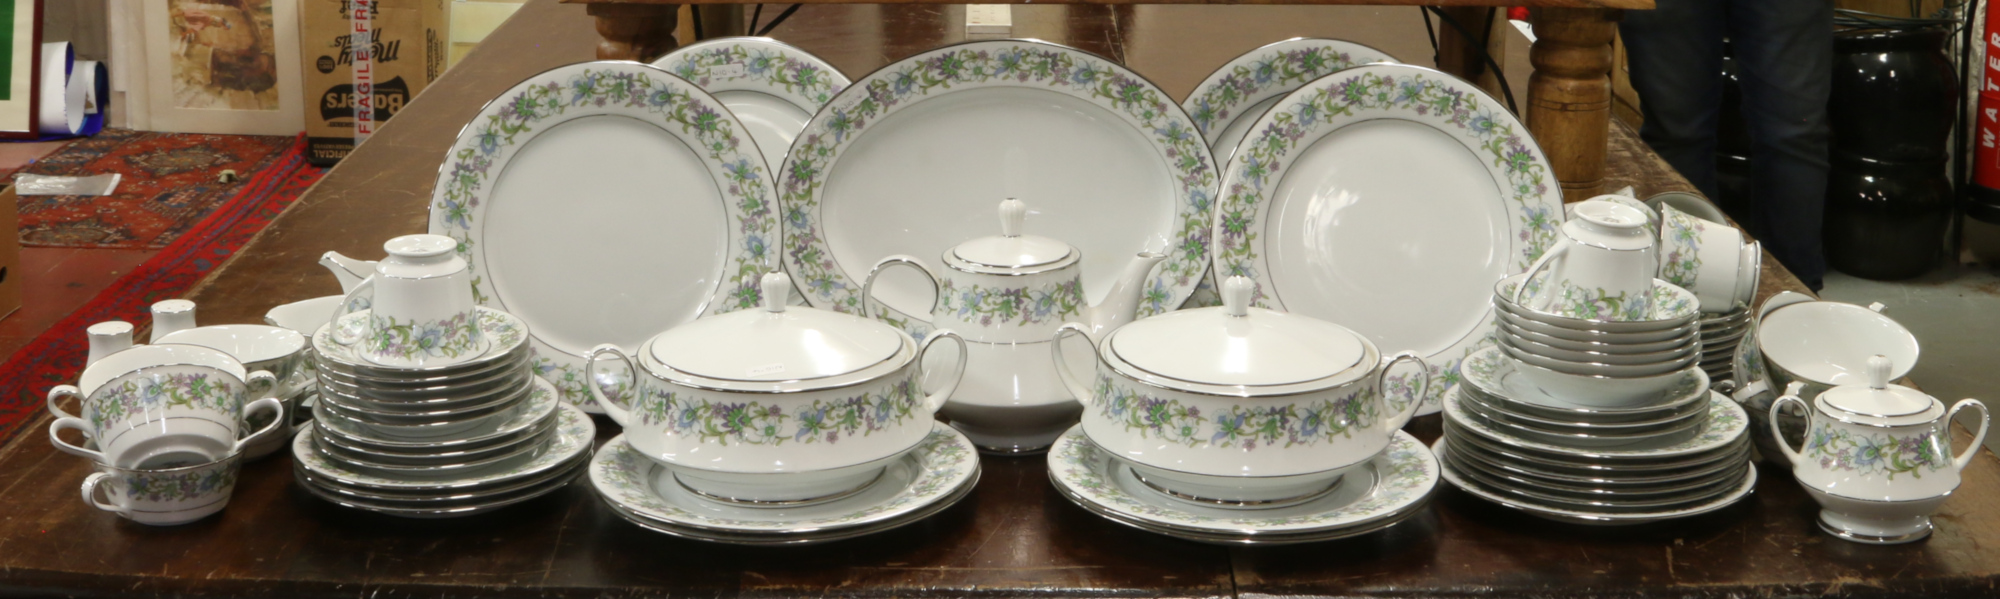 Lot 16 - A Noritake tea and dinnerware's in the tradition design to include teapot, tureens, milk jug, meat